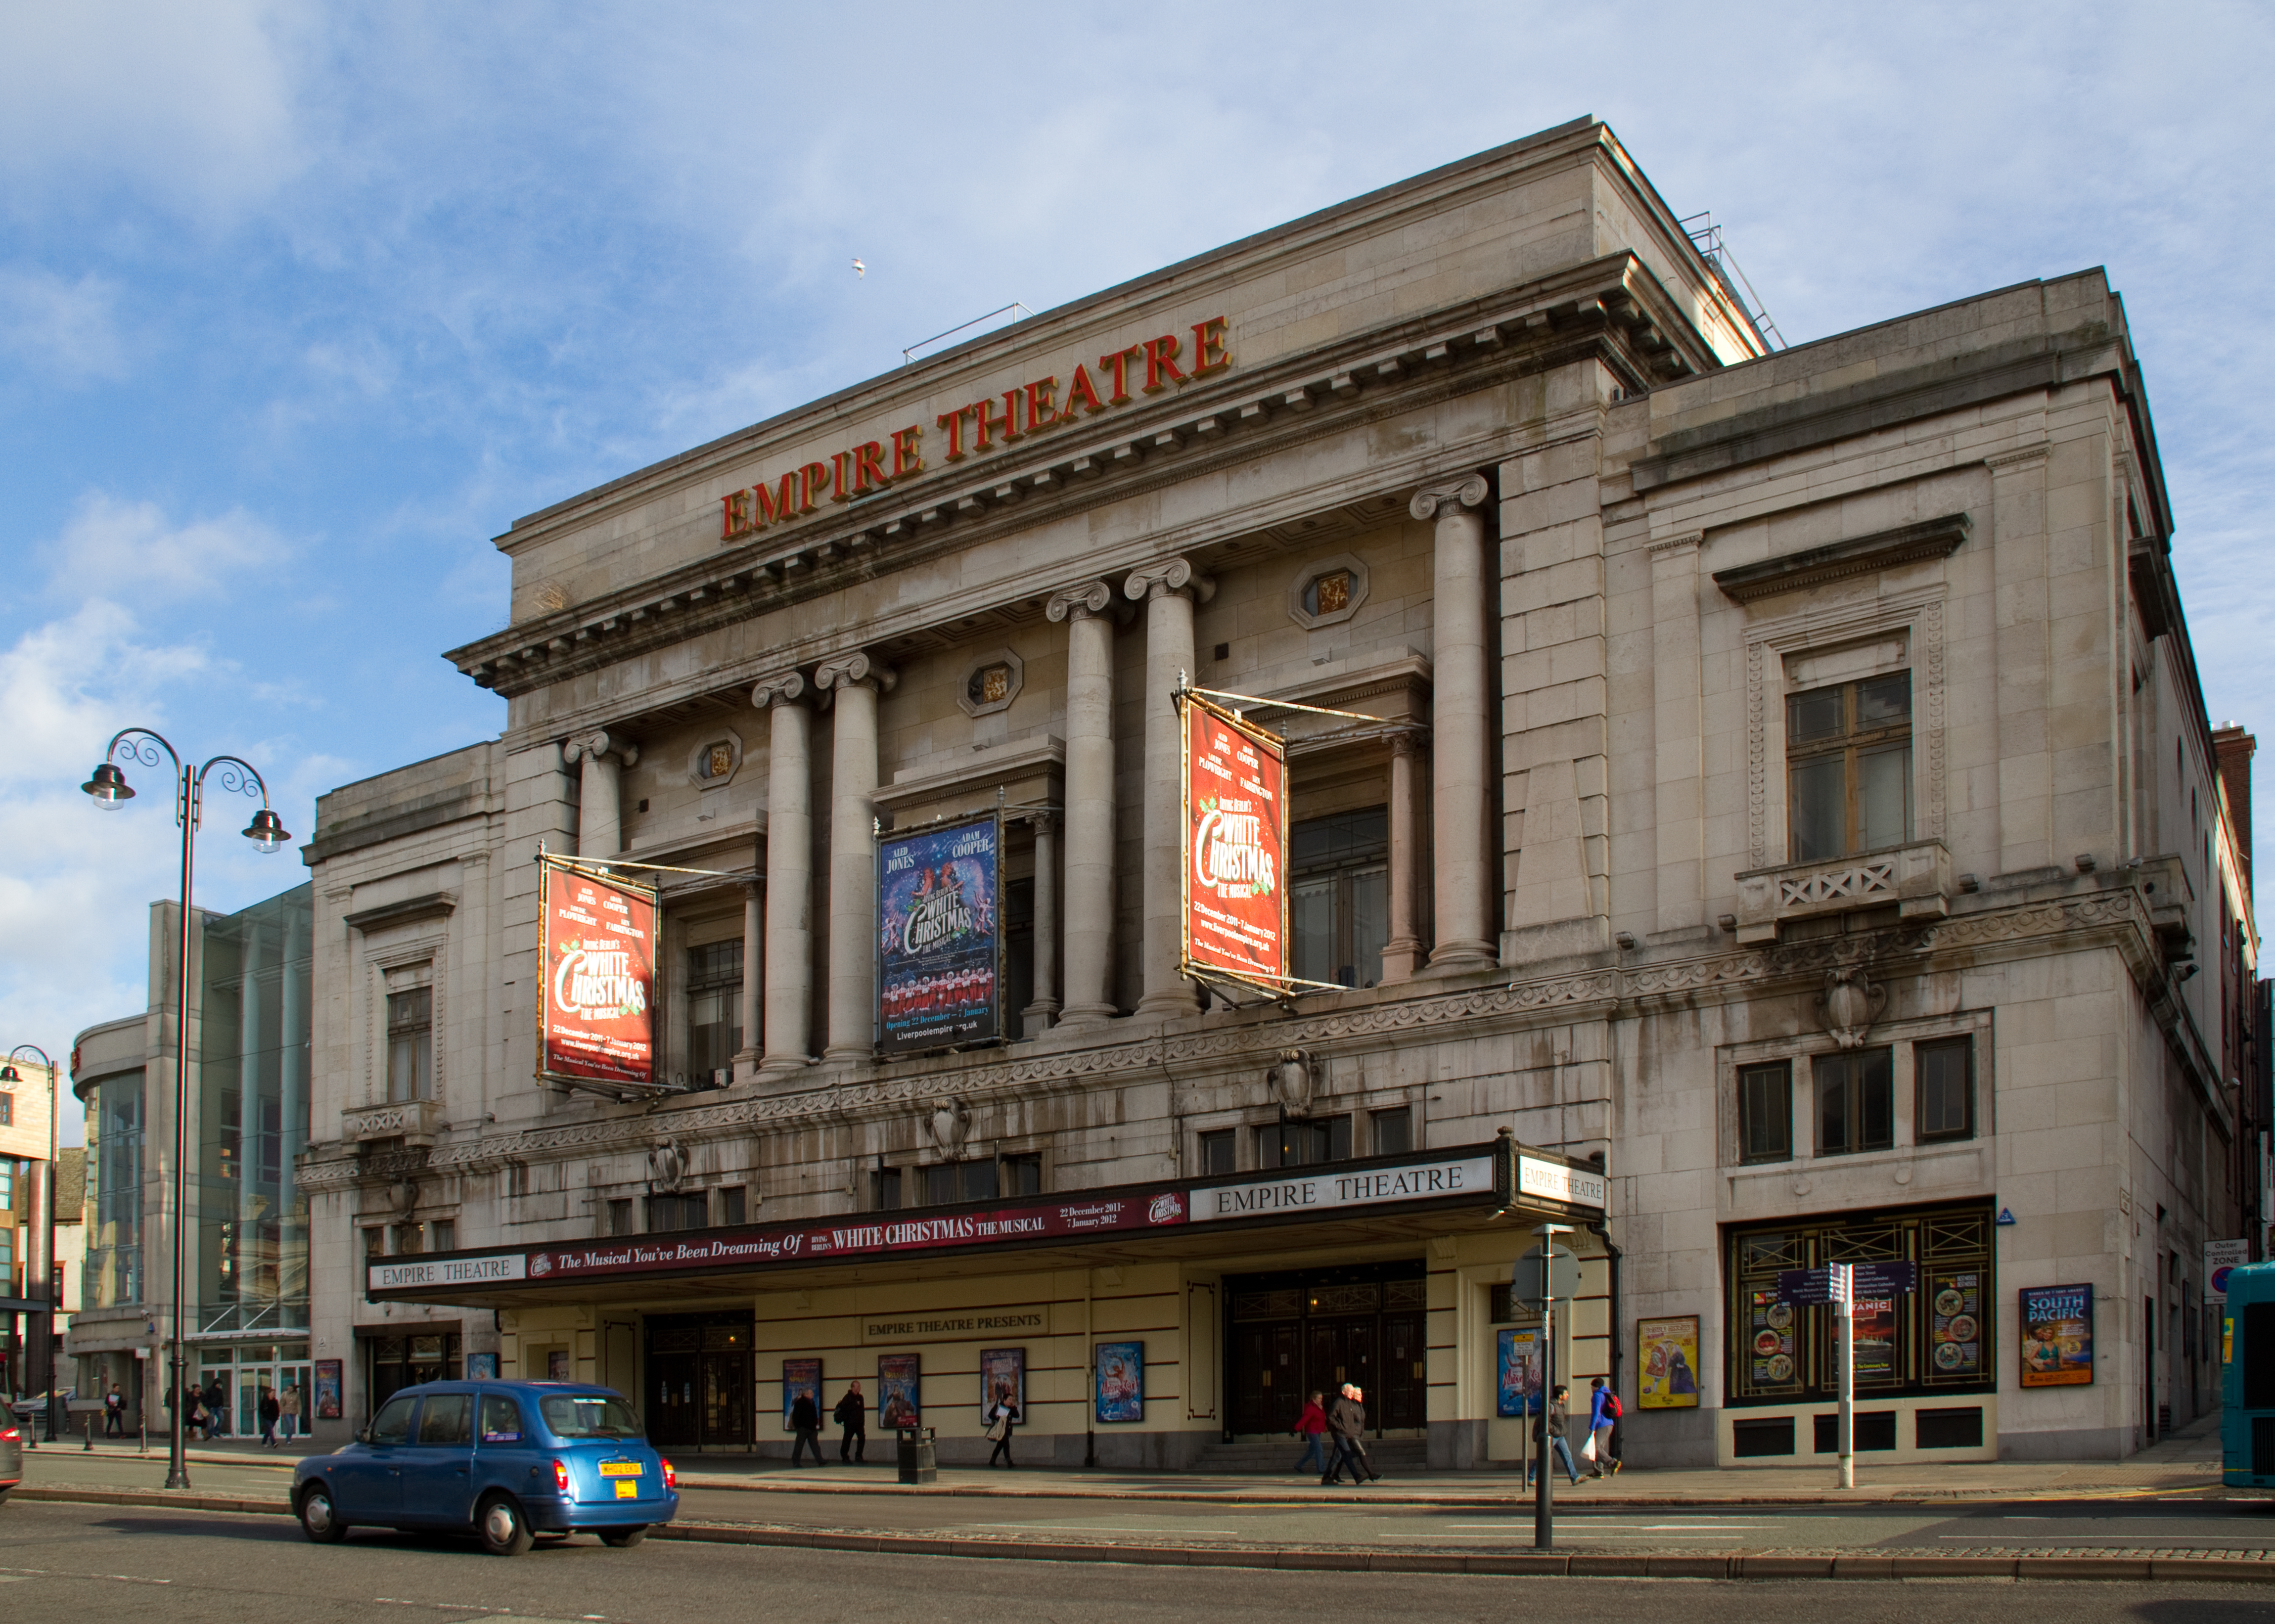 Liverpool Empire Theatre - Liverpool Underlined